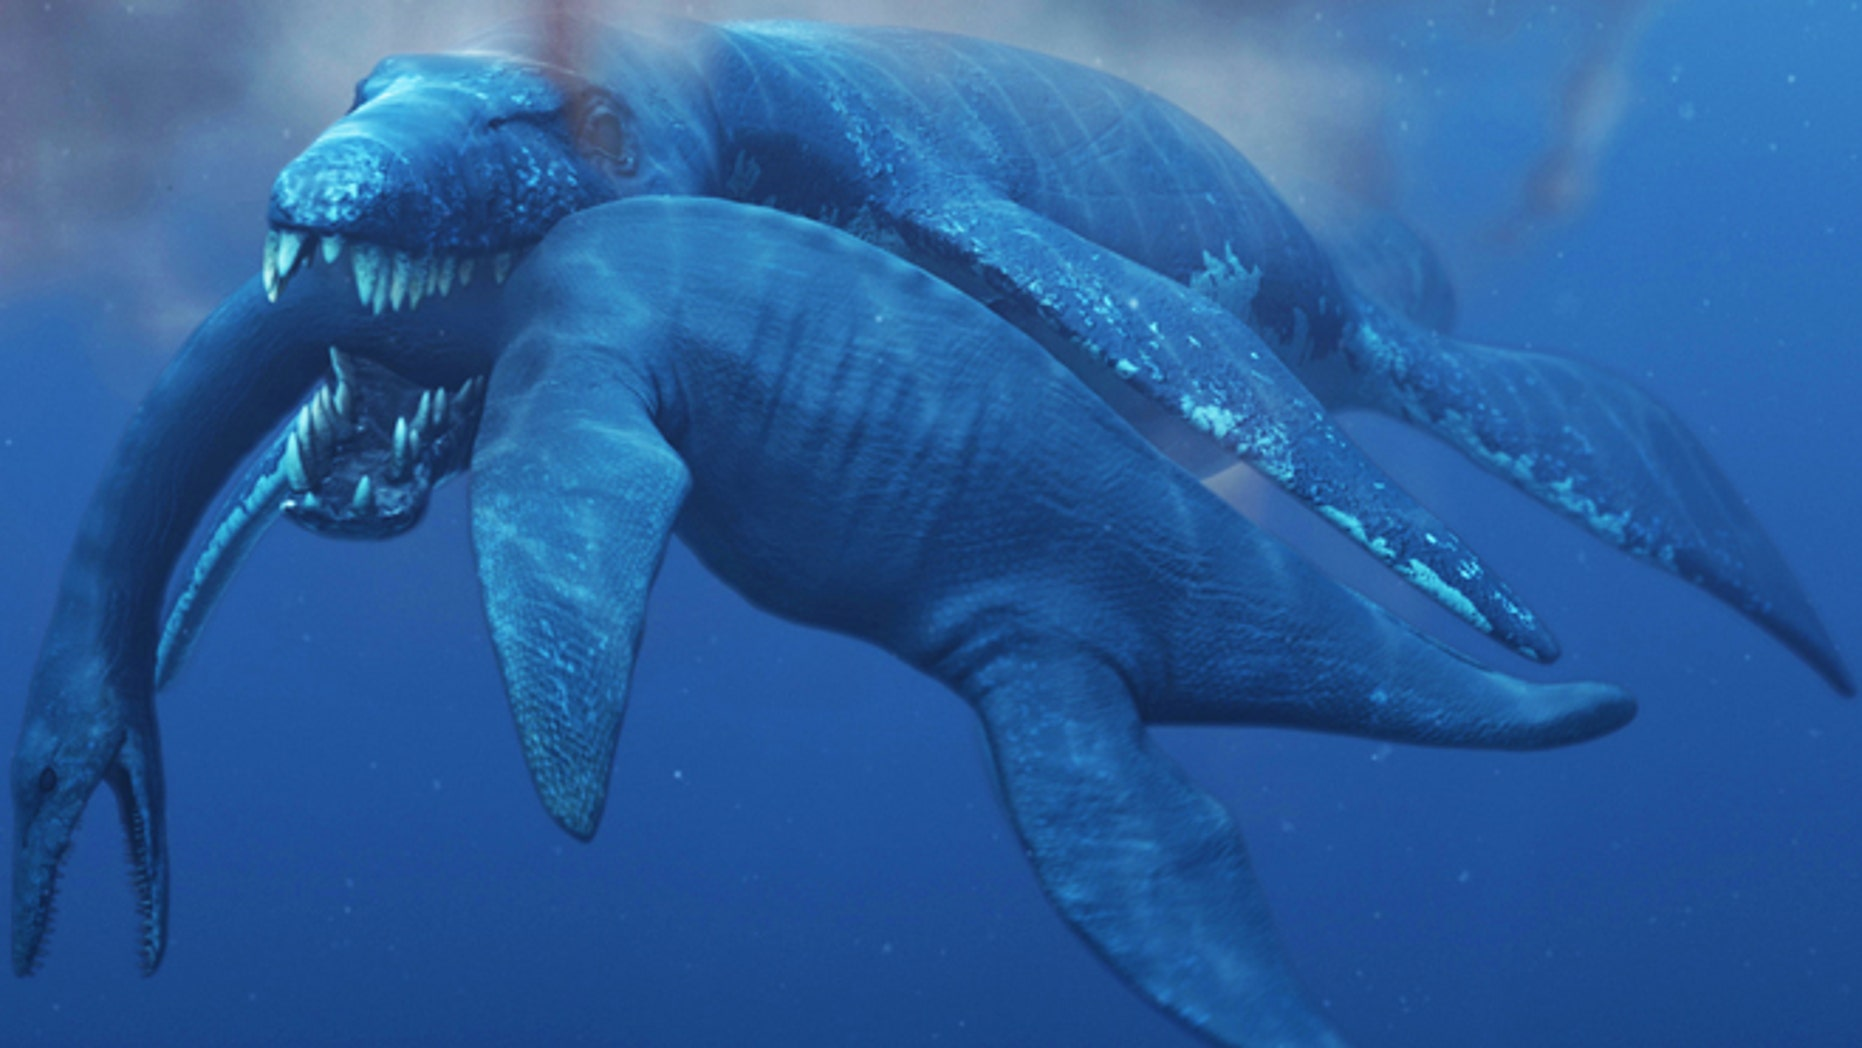 P. funkei likely preyed on plesiosaurs, related long-necked, small-headed reptiles.